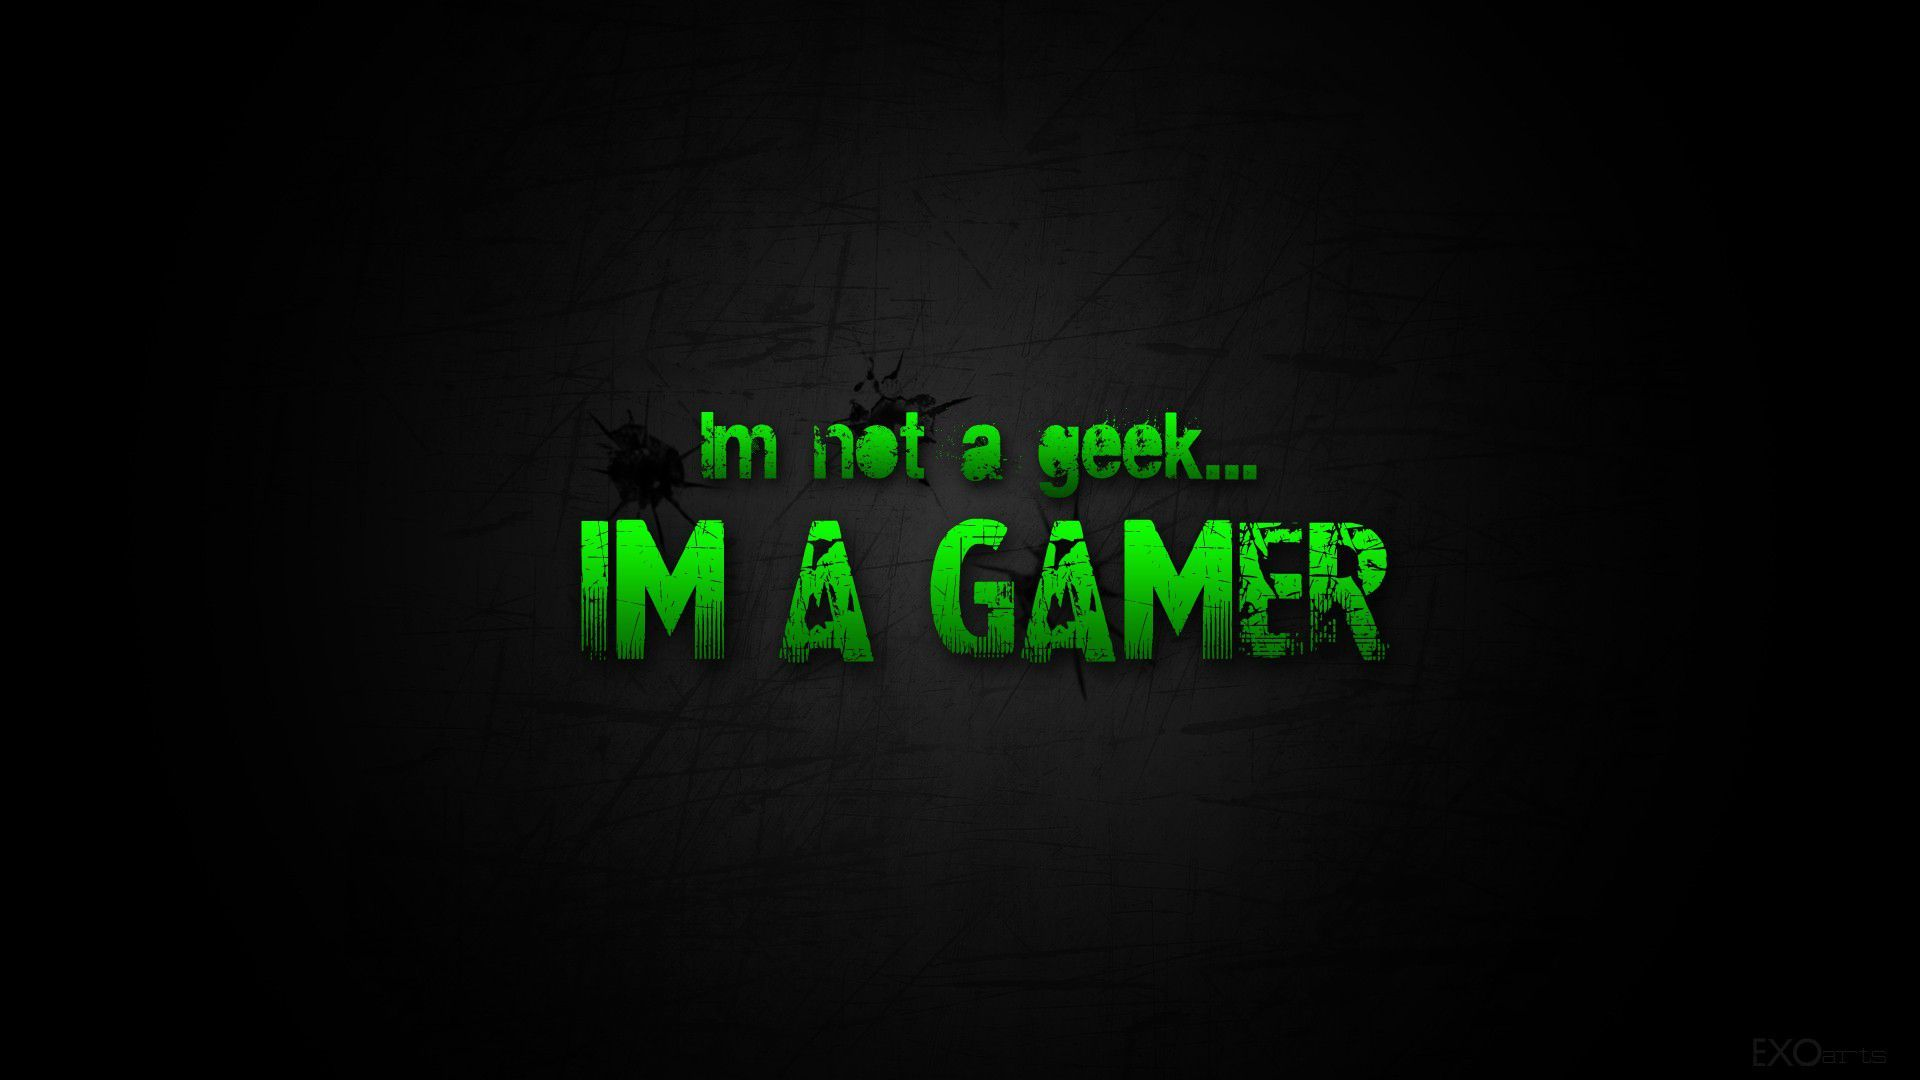 Gaming Desktop Wallpaper Hd Gaming Desktop Wallpapers Gamer Quotes Computer Wallpaper Hd Gaming Wallpapers Hd